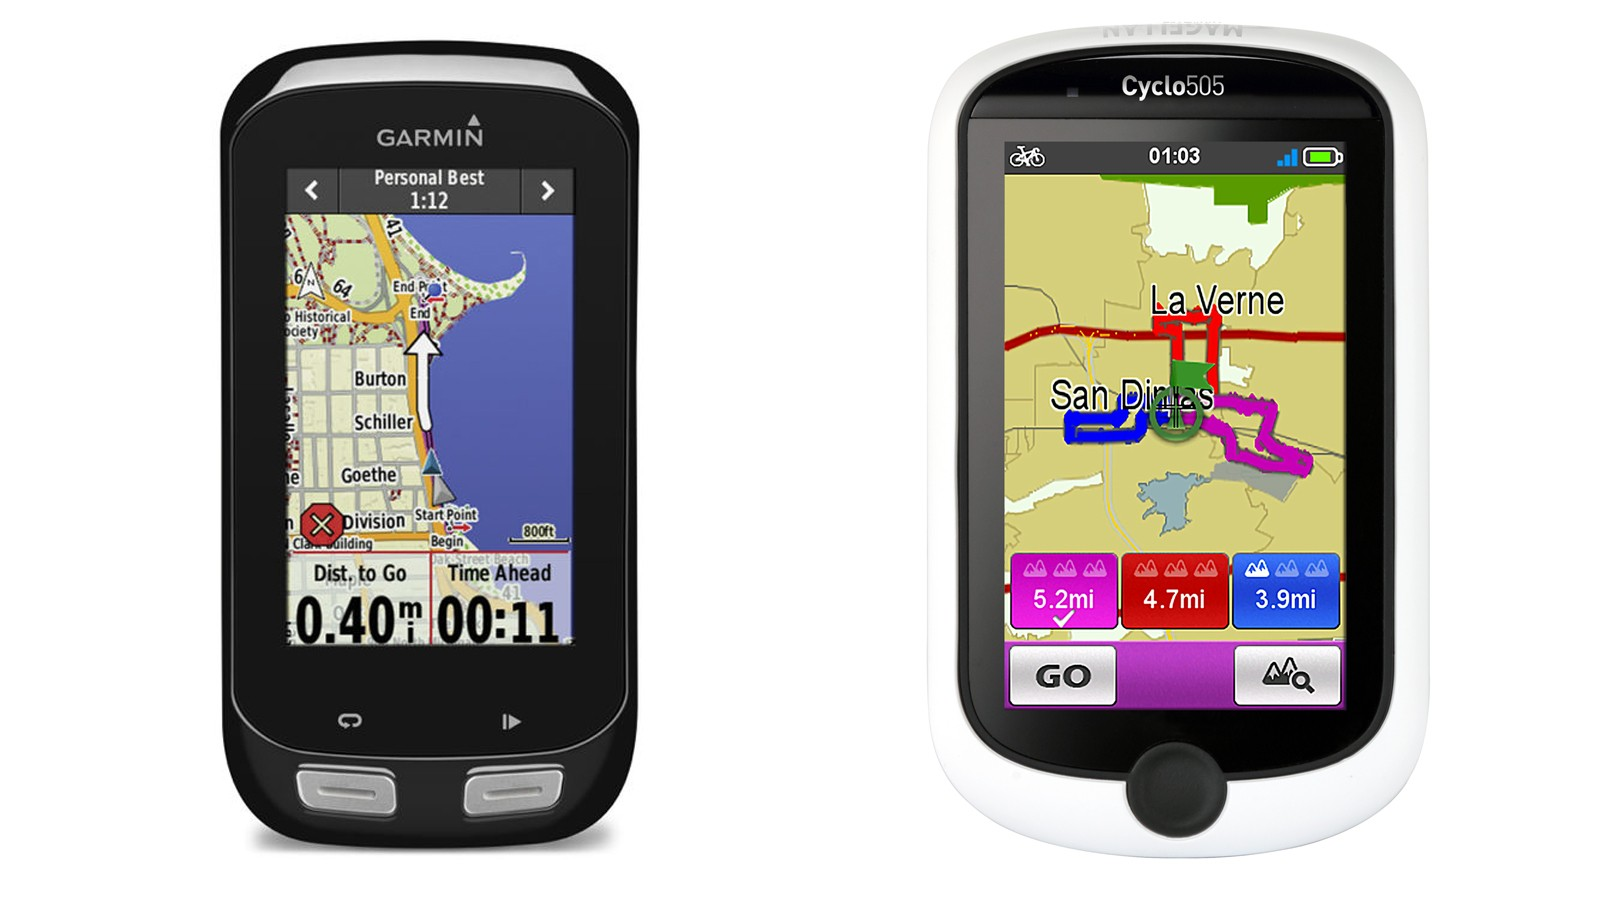 Competition between two GPS companies —and not just cycling companies selling GPS computers —should benefit cyclists in the long run